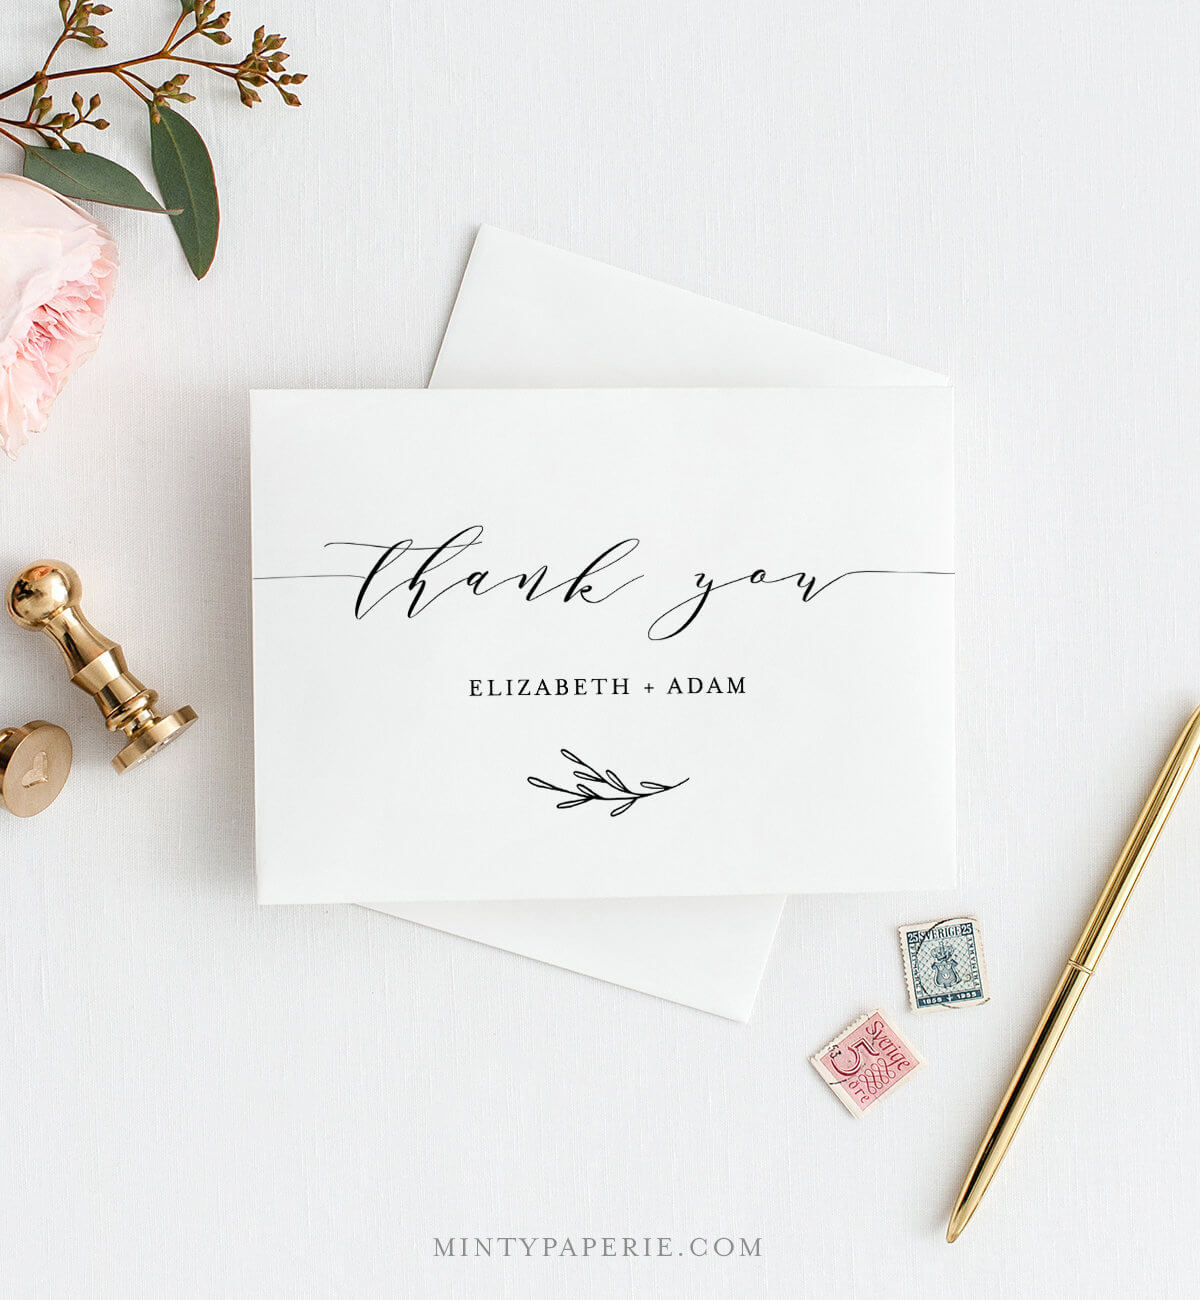 Self Editing Thank You Template, Folded Thank You Note Throughout Thank You Note Card Template